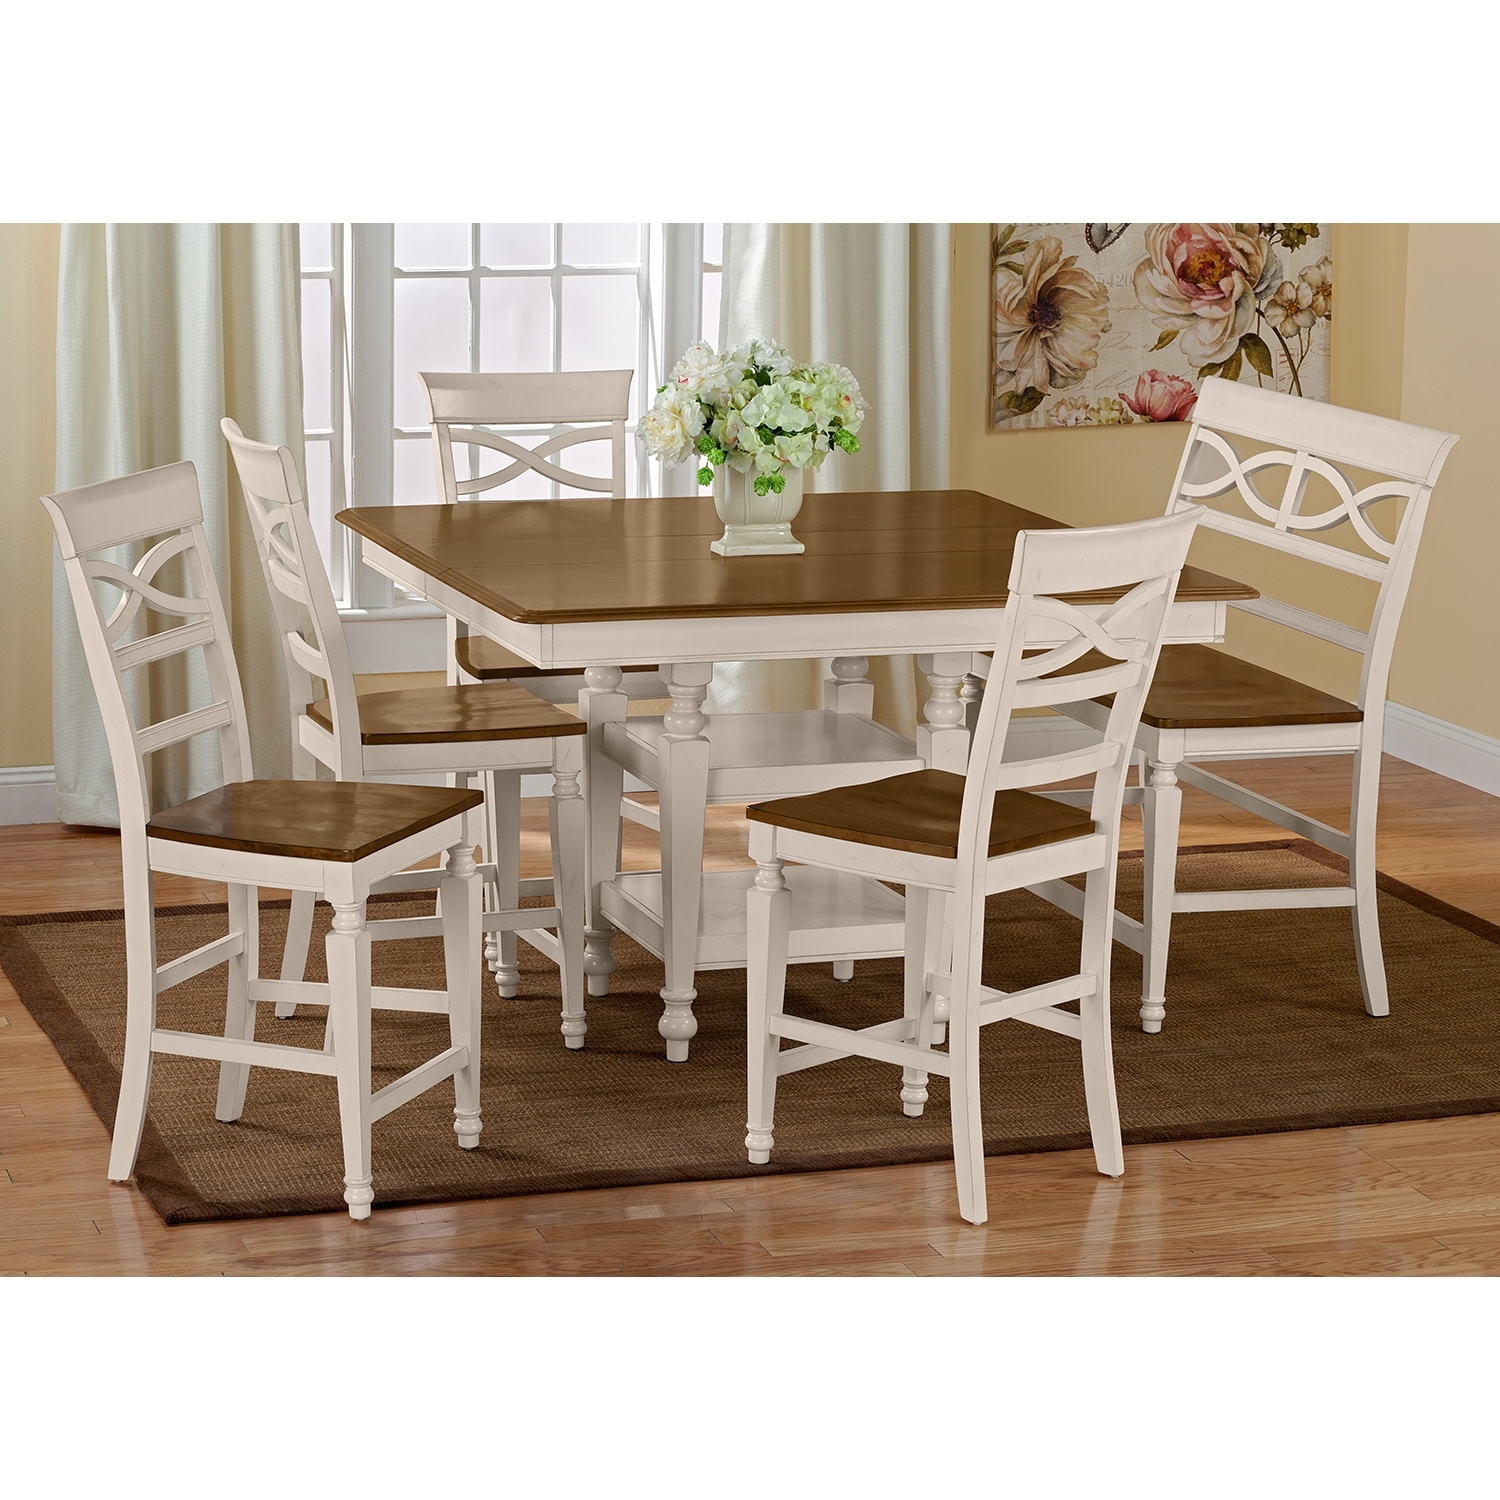 Counter Height Dining Set With Bench : Chesapeake II Dining Room Counter-Height Table - Value City Furniture